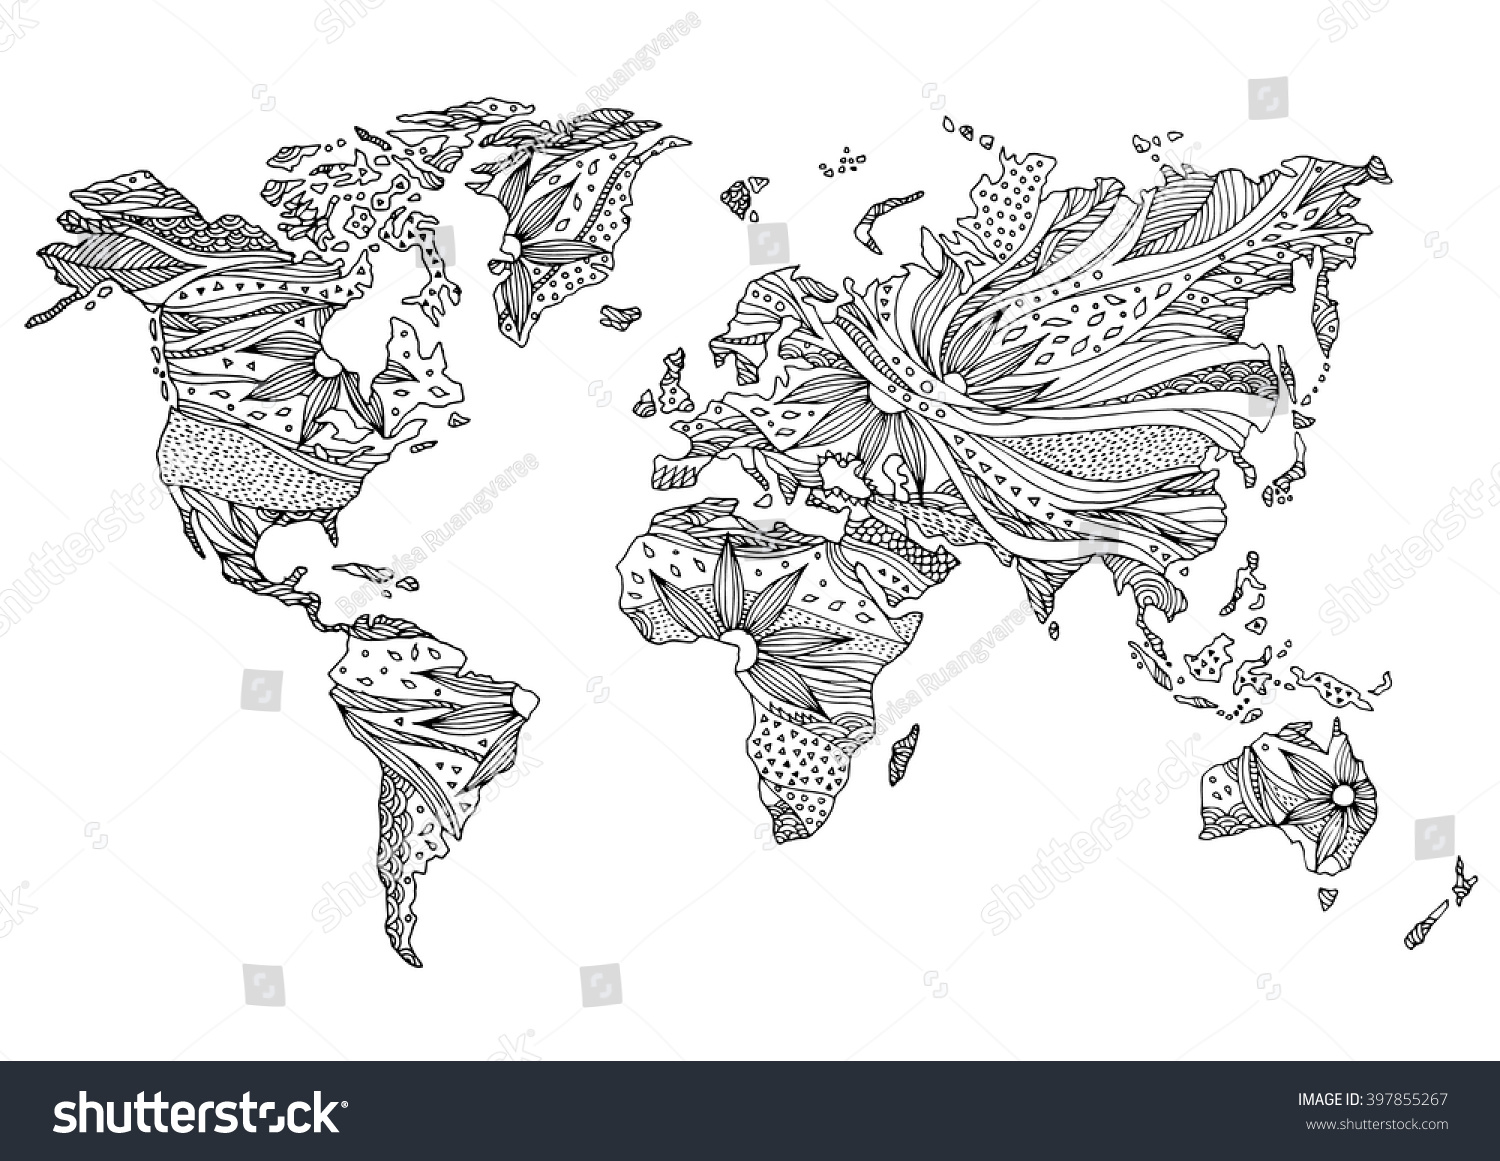 World Map Hand Drawn Flower Floral Stock Vector 397855267